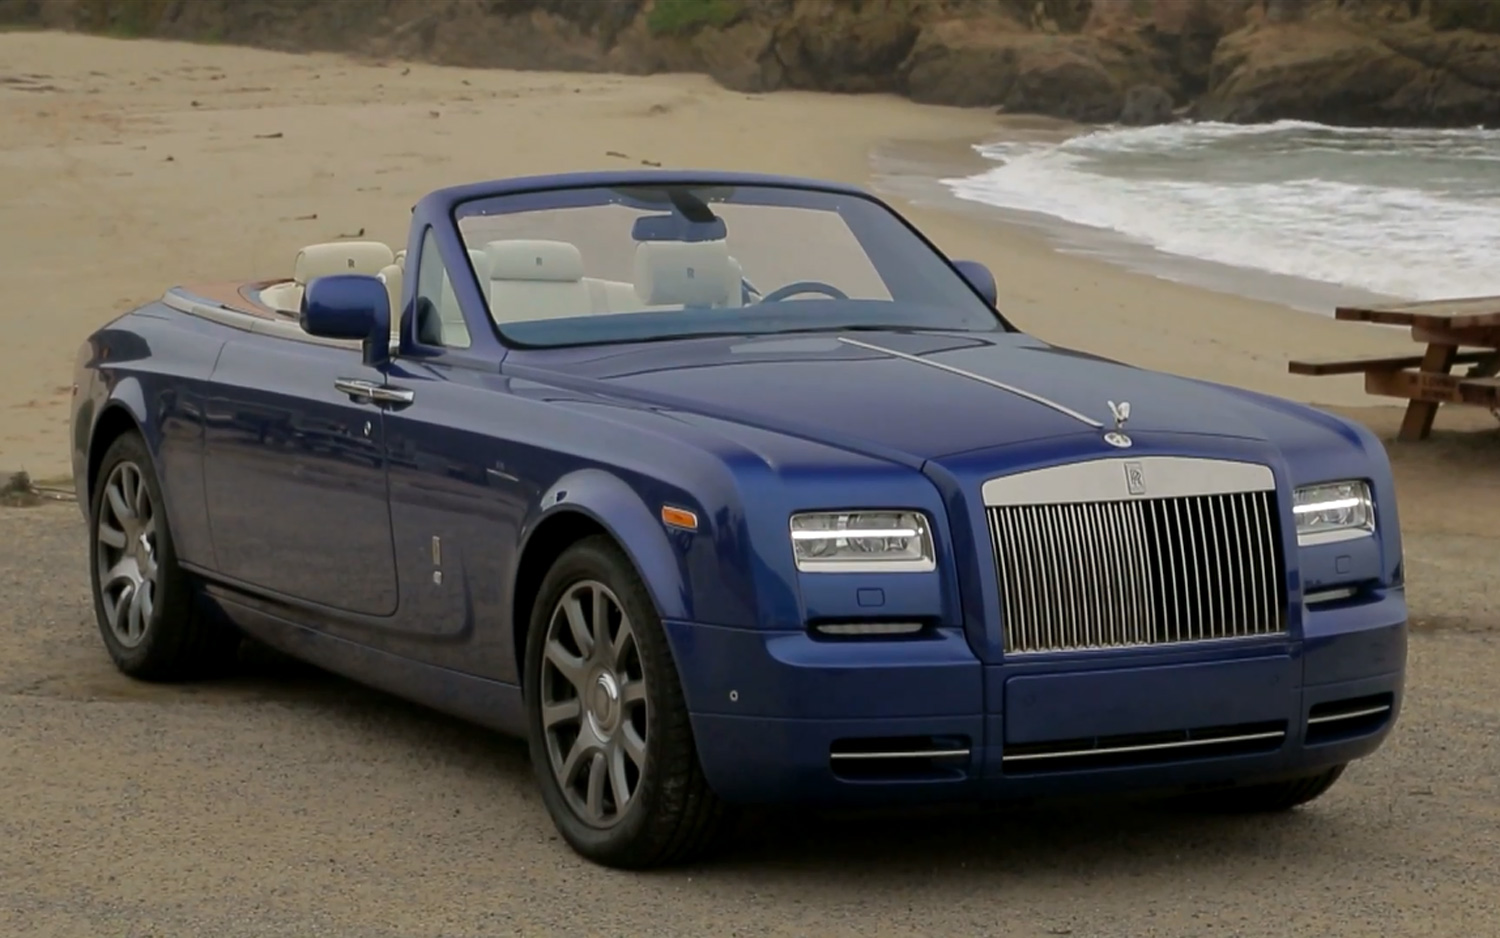 2014 Rolls royce Phantom Drophead Coupe #18